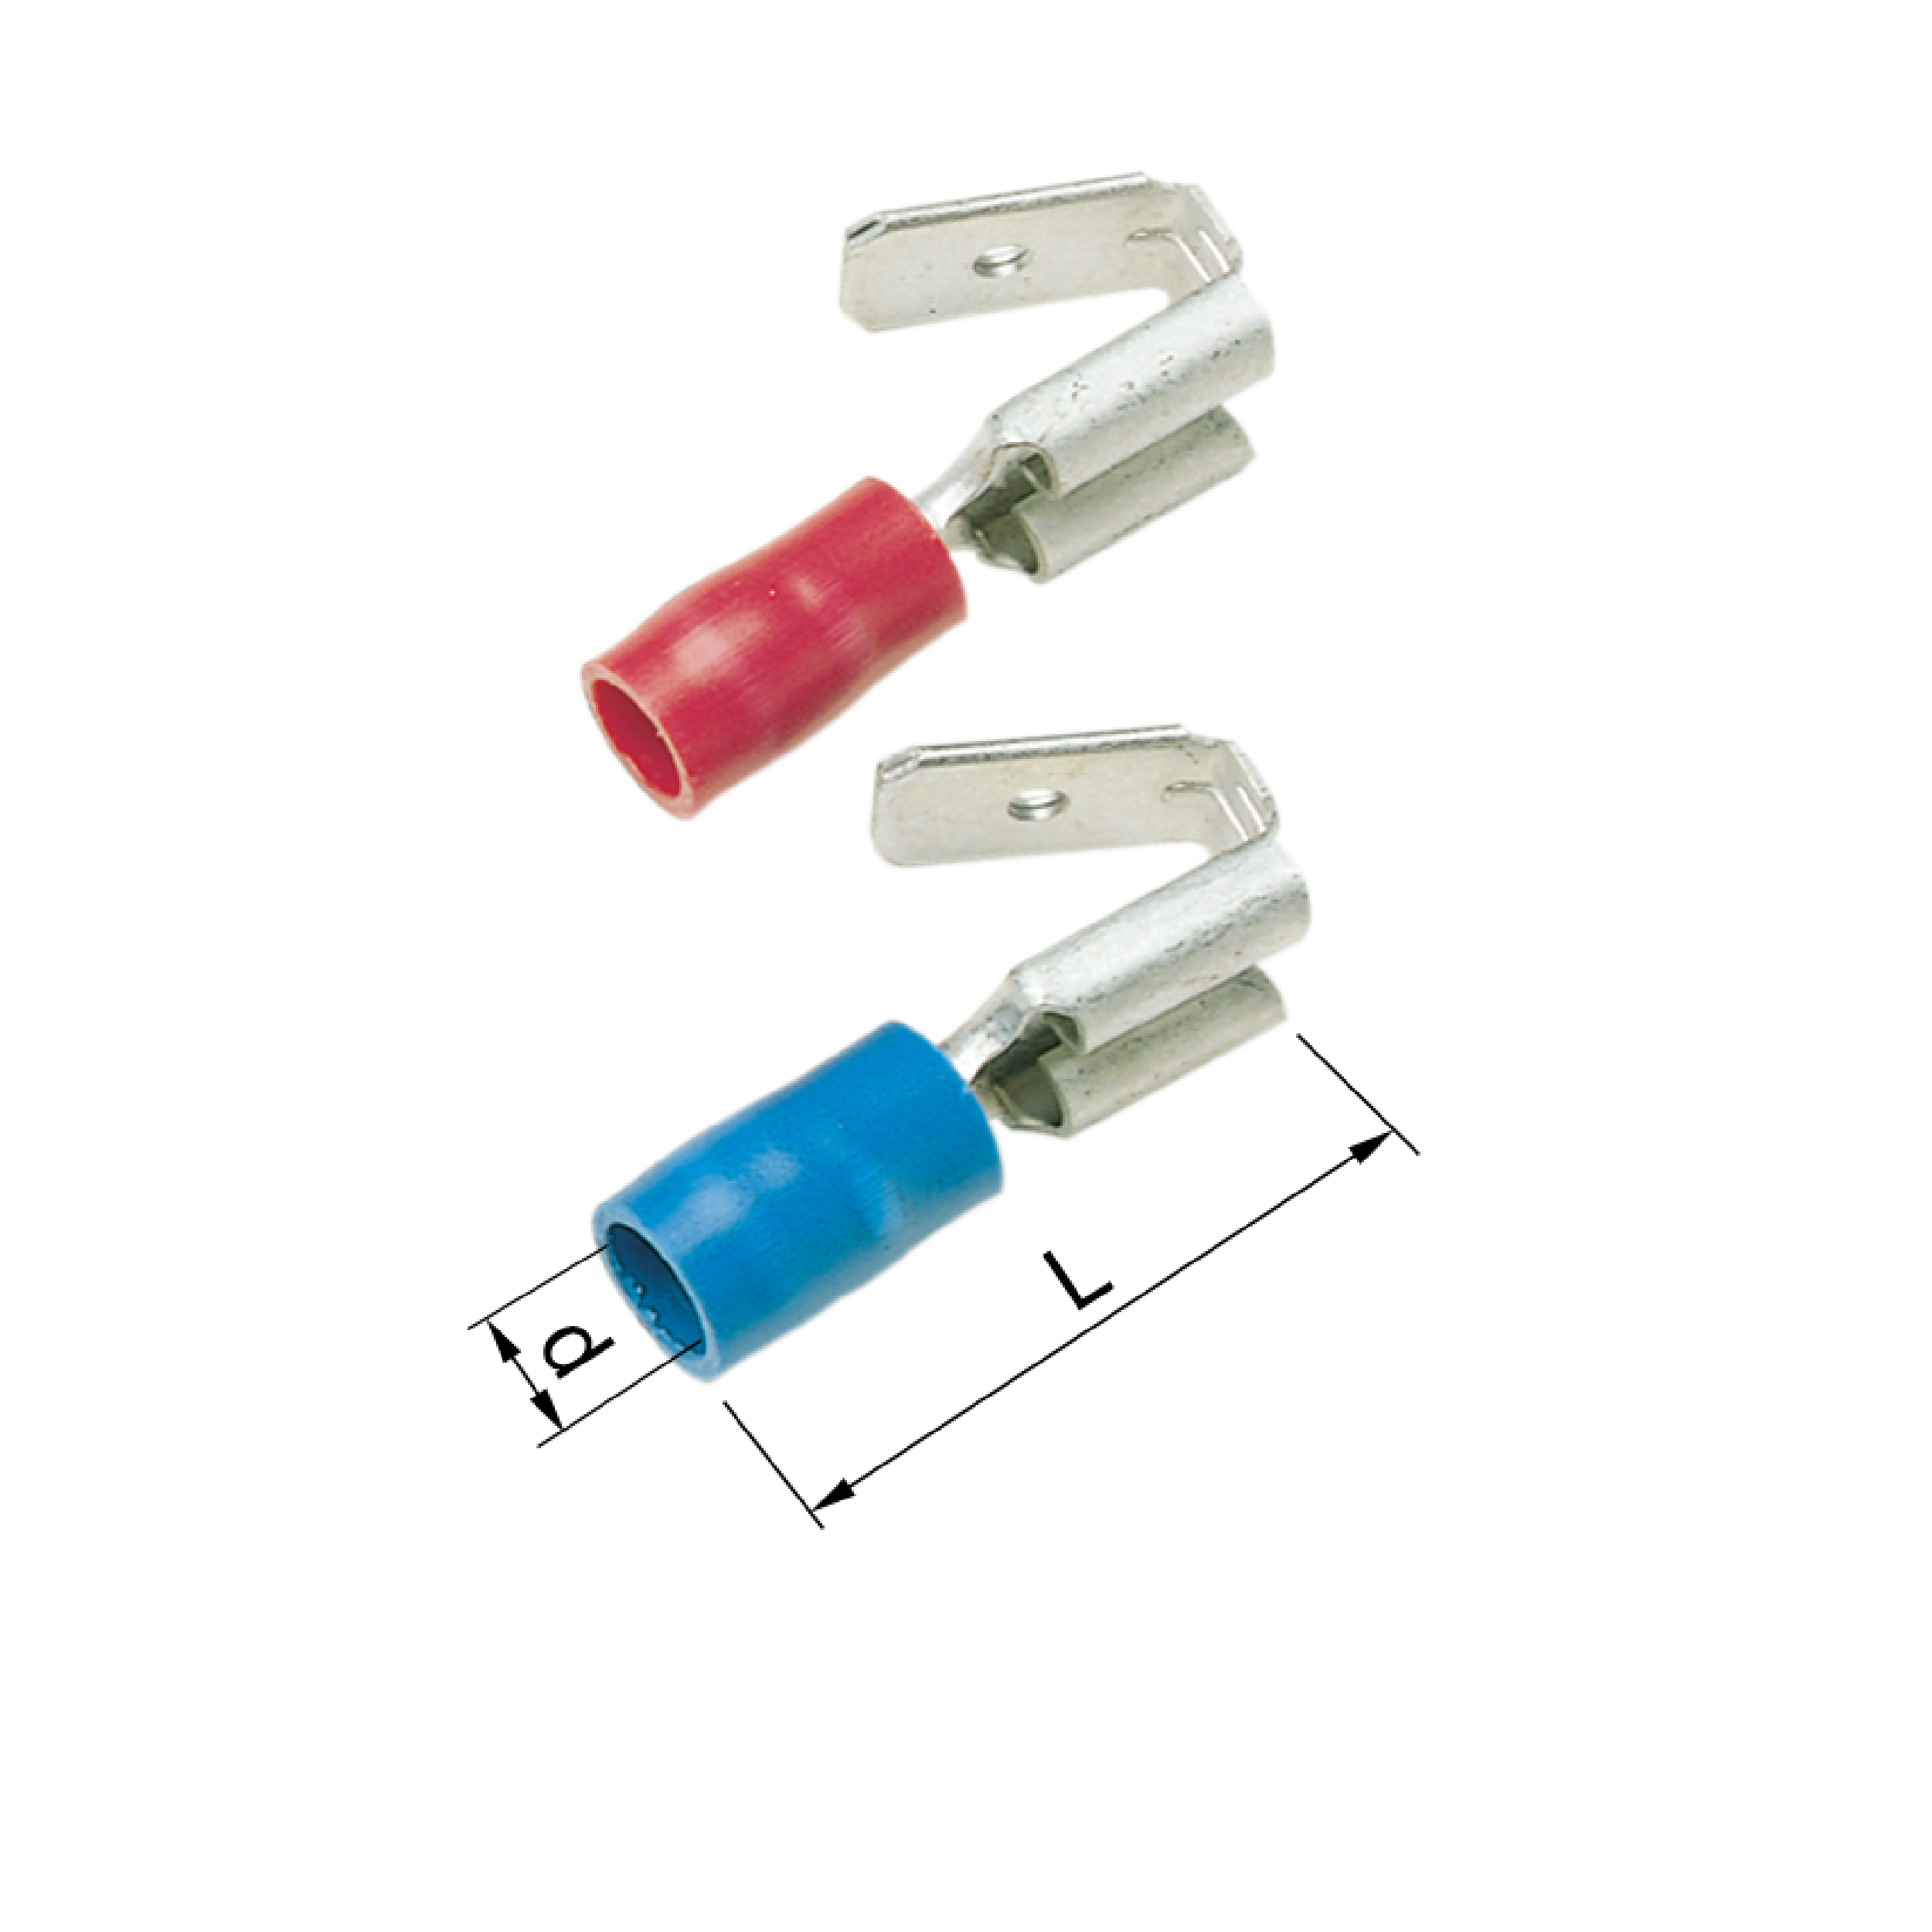 Elpress Pre-Insulated Multiple Tabs - Halogen Free (0.5-2.5mm²). A1507FLSH, A2507FLSH